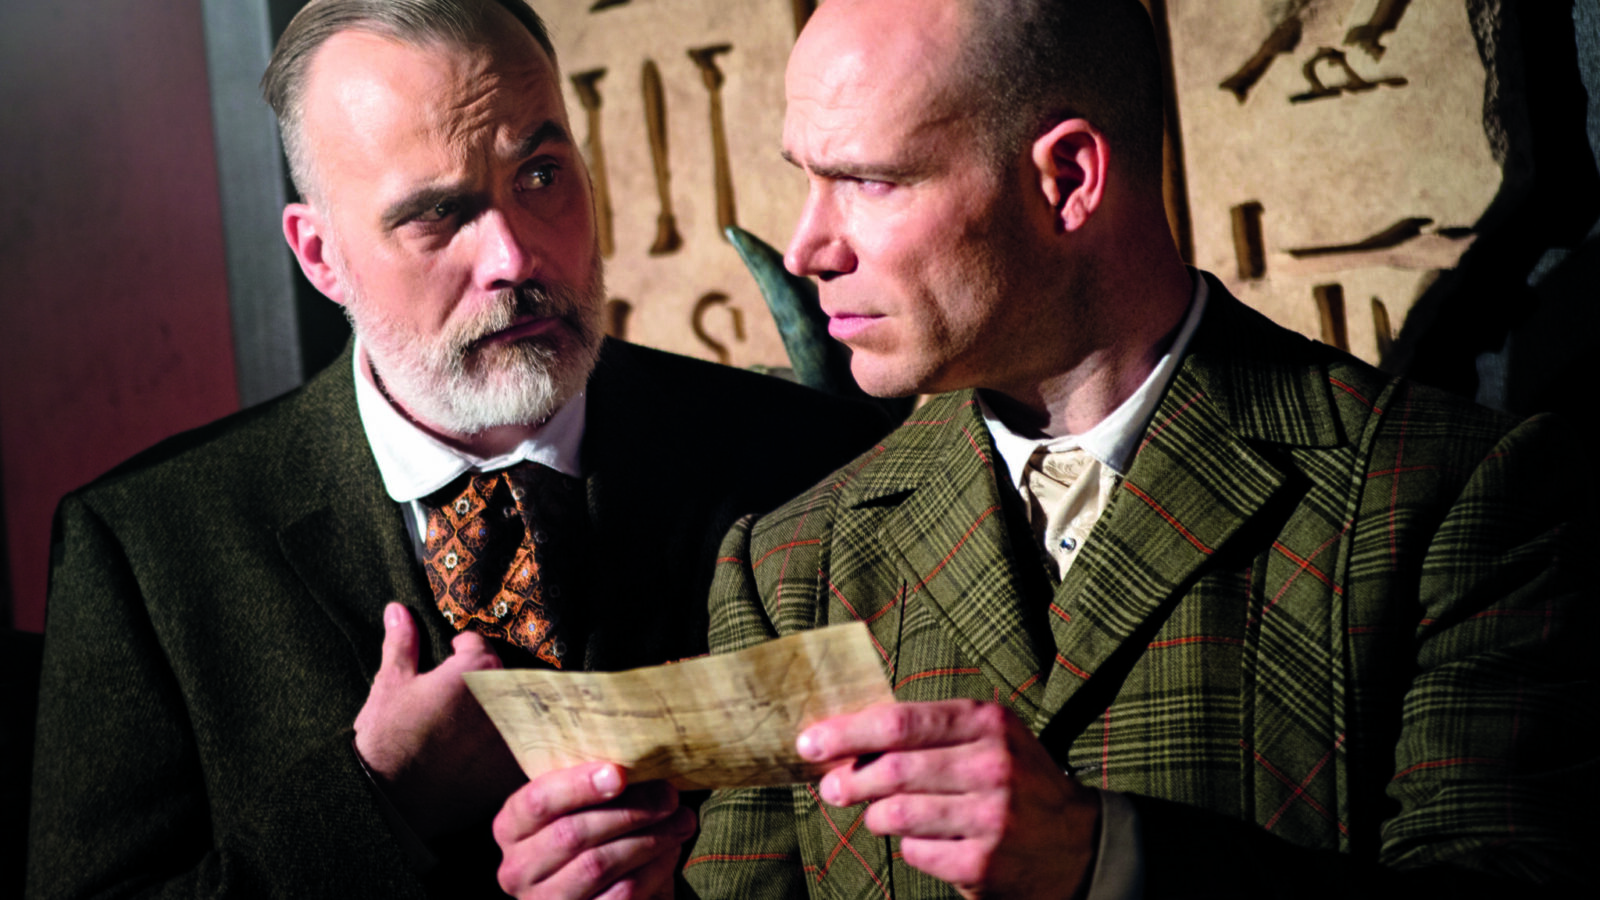 Theater-Tipp: Sherlock Holmes: Der Fluch des Pharao, ab 08.09., Imperial Theater